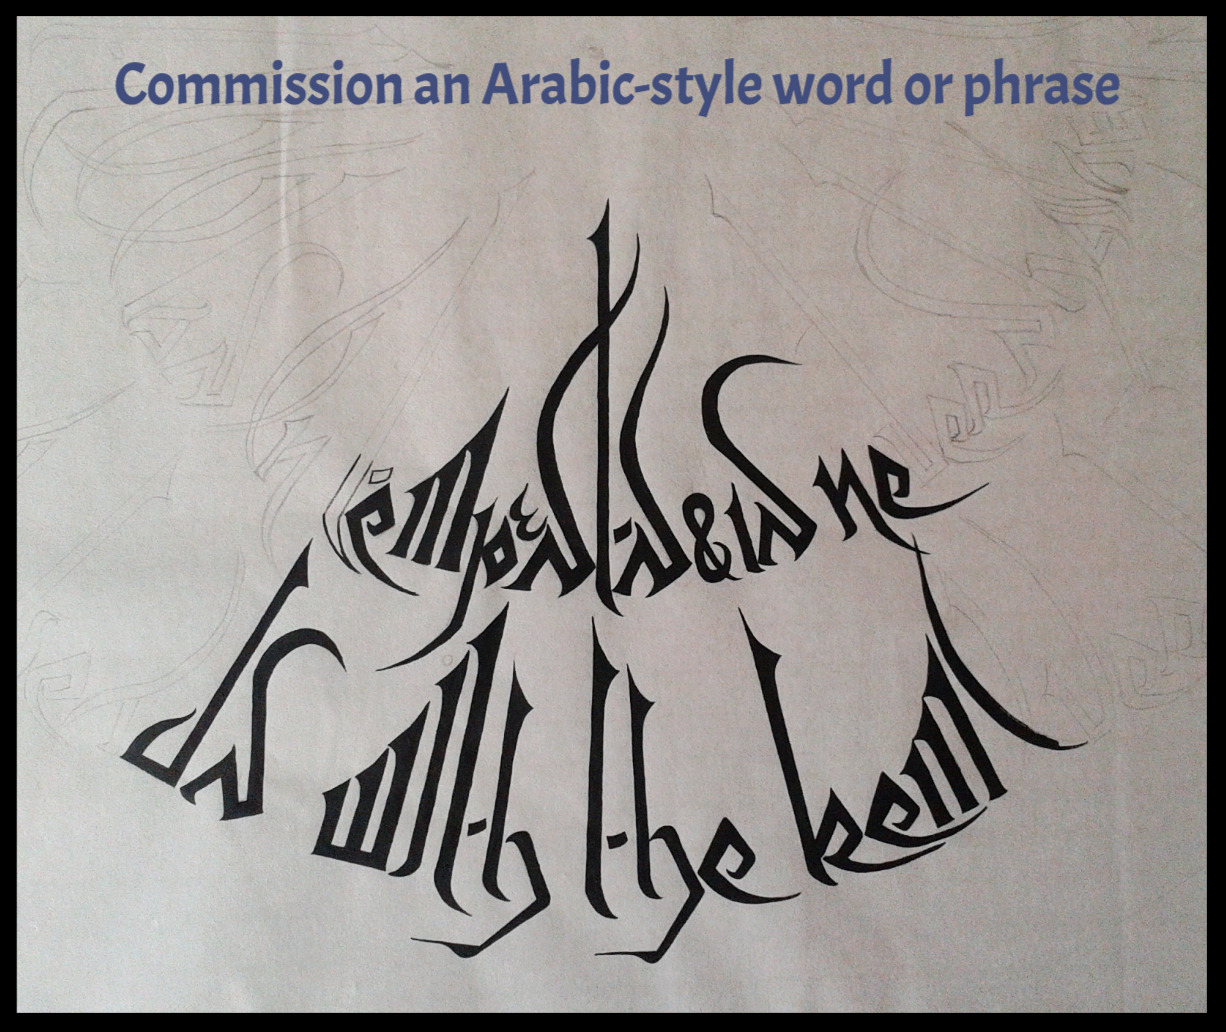 Commission Arabic style word